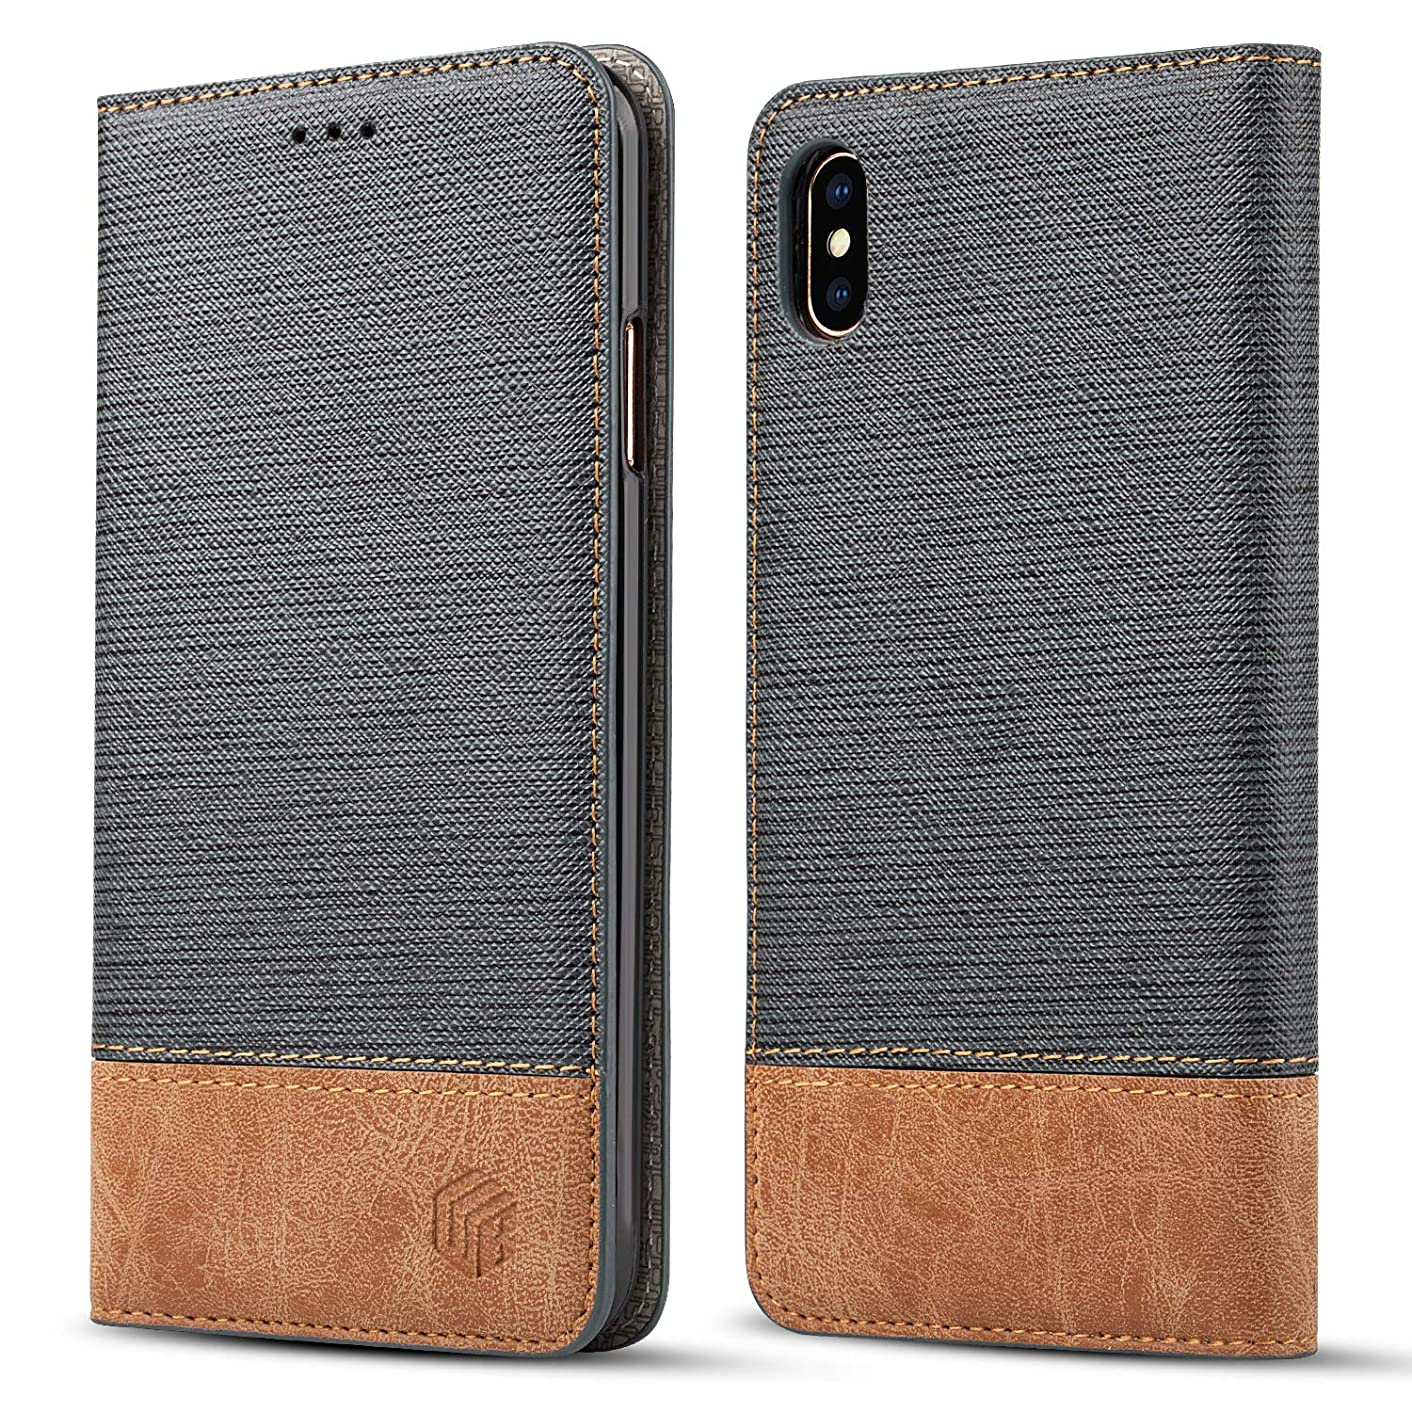 for iPhone Xs Max Wallet Case,WenBelle Blazers Series,Stand Feature,Double Layer Shock Absorbing Premium Soft PU Color Matching Leather Cover Flip Cases for Apple iPhone Xs Max 6.5 inch (Grey)